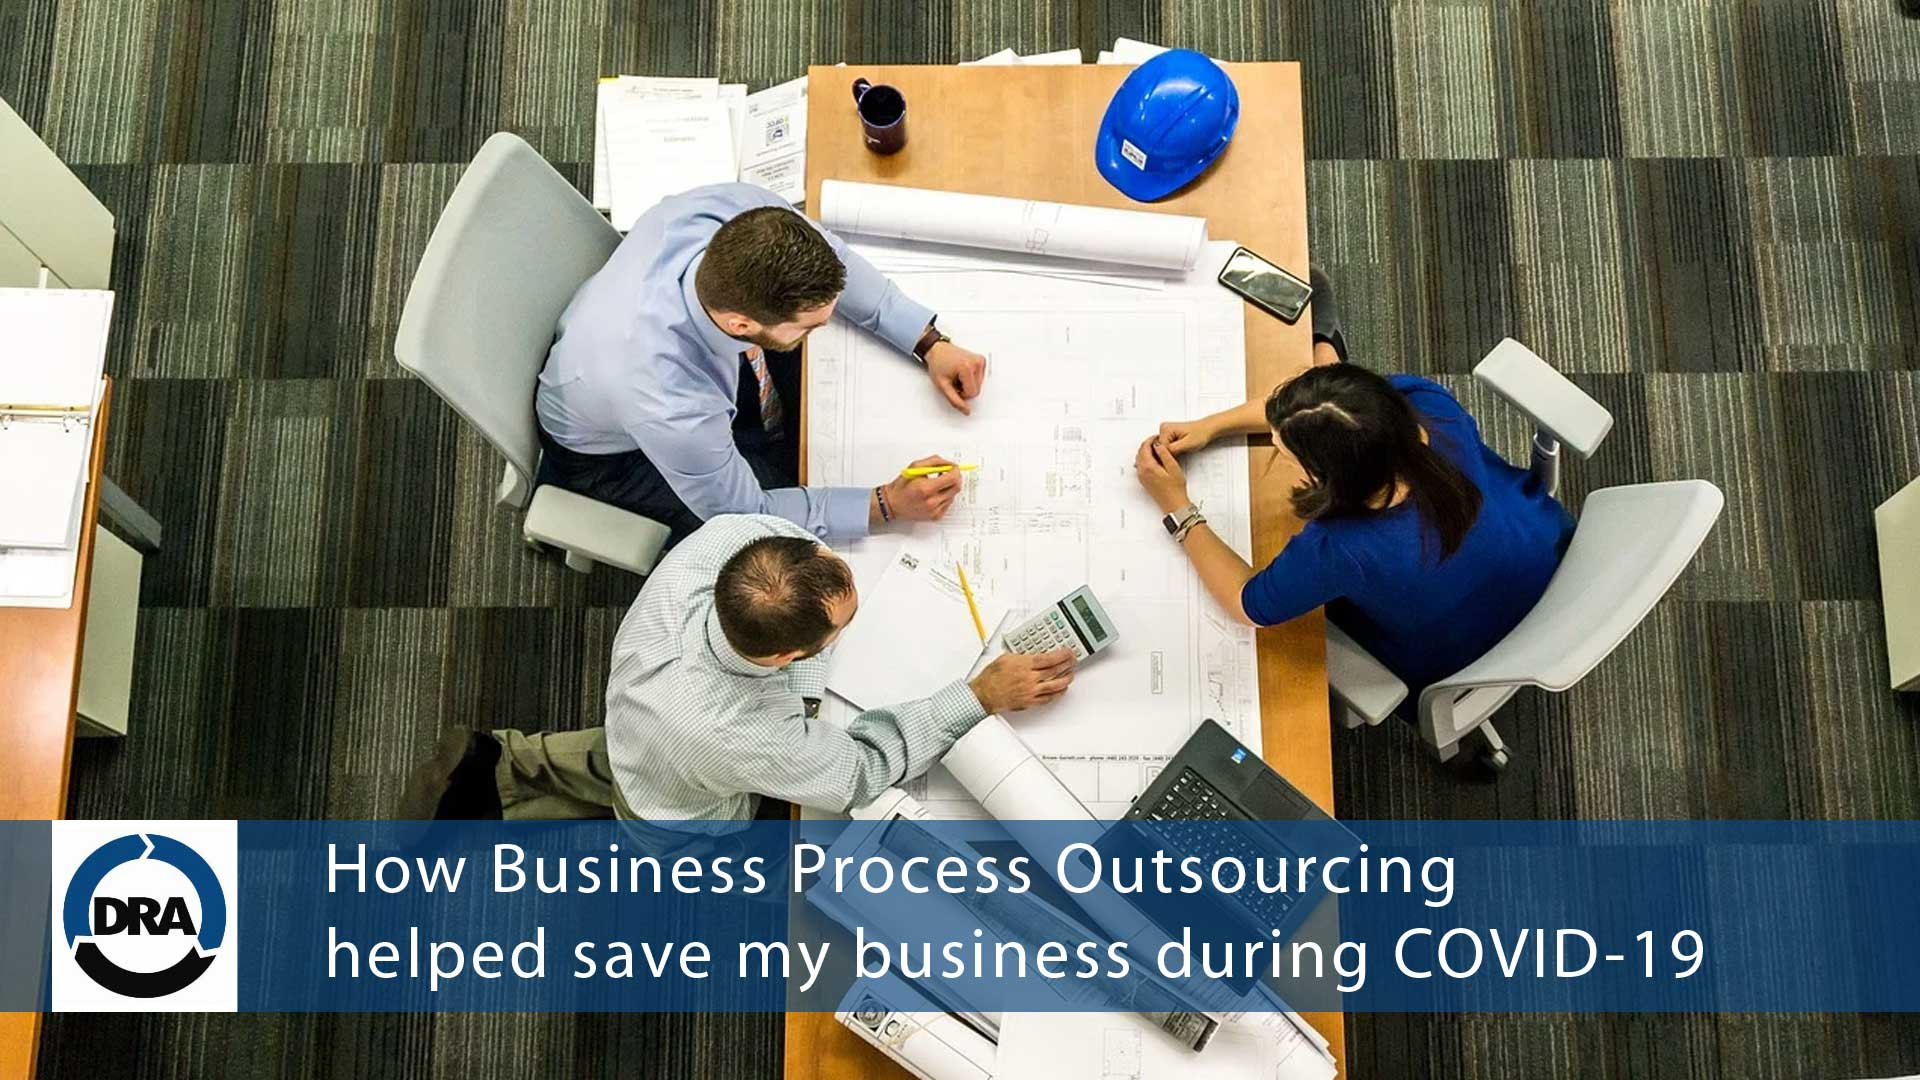 How-Business-Process-Outsourcing-helped-save-my-business-during-COVID-19-